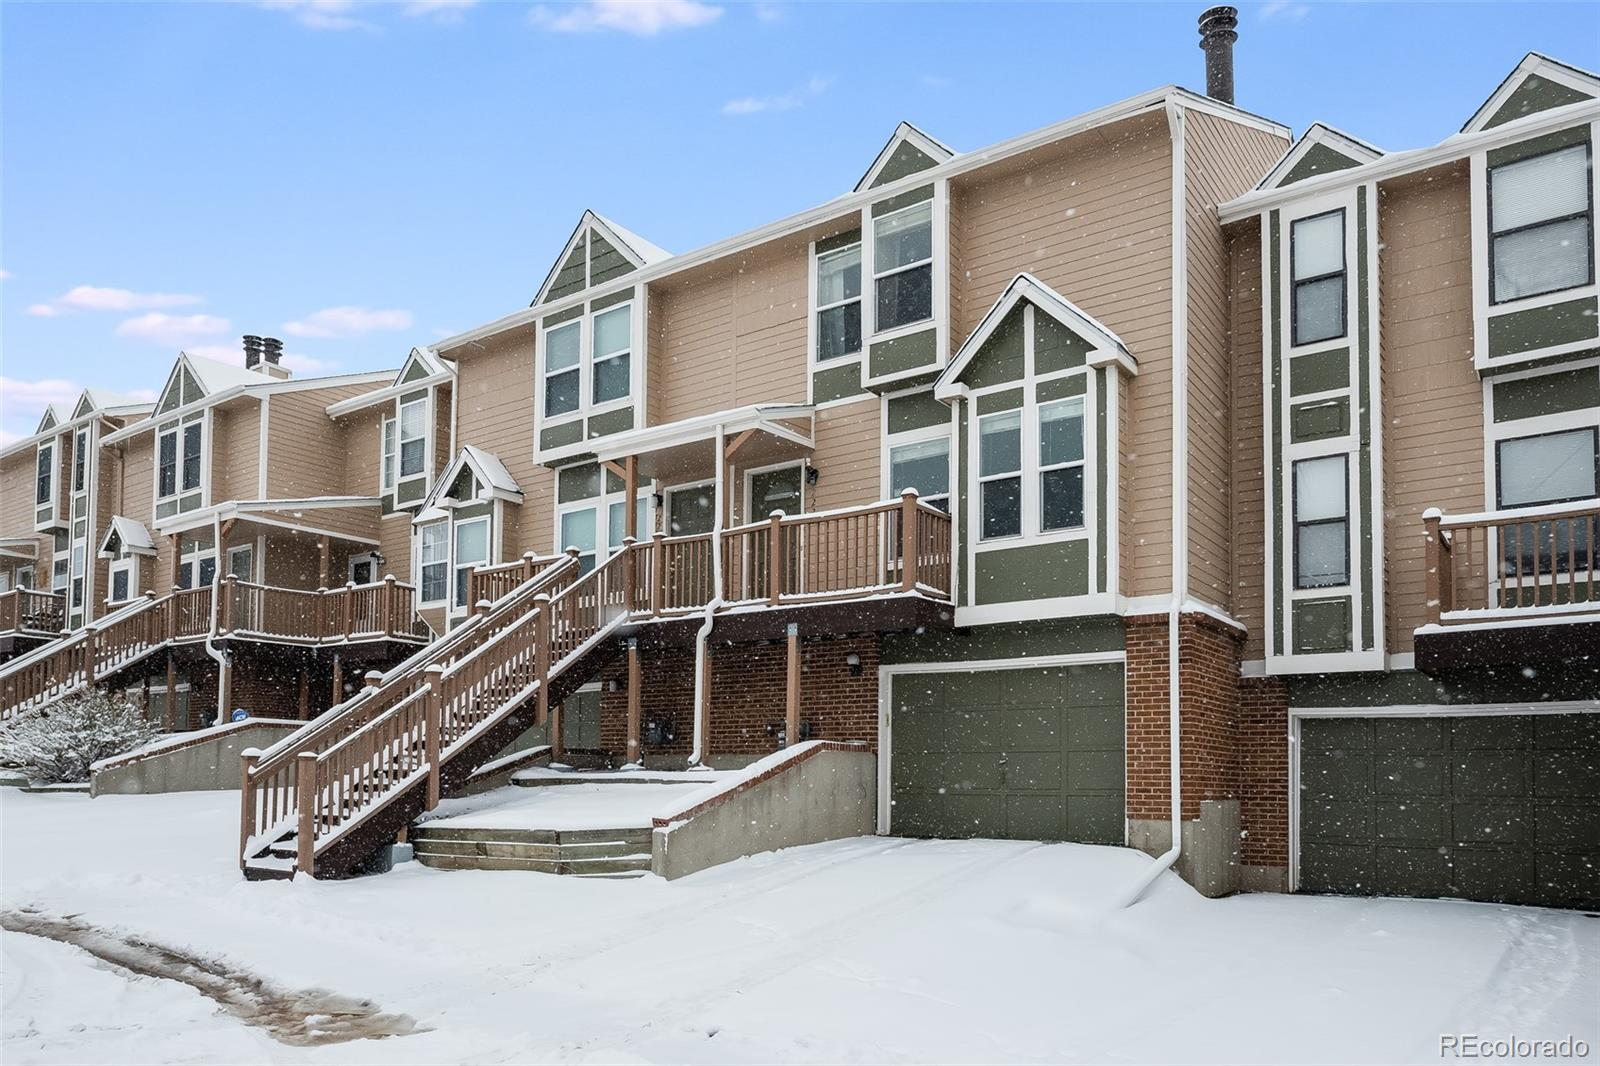 MLS# 2133621 - 3 - 2220 E 103rd Place, Thornton, CO 80229